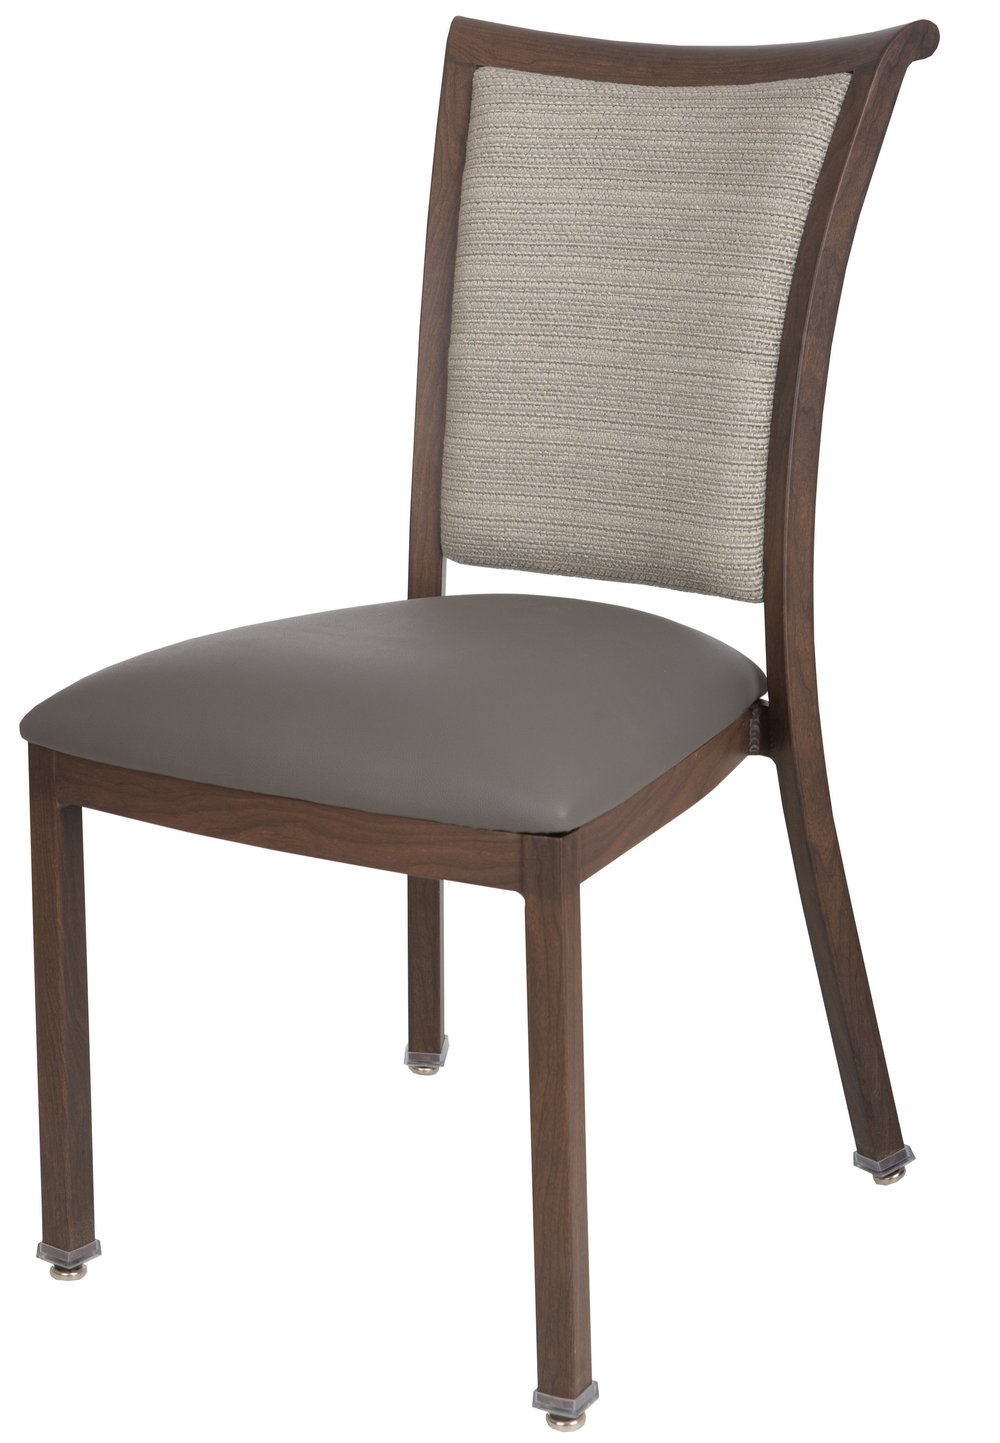 Victoria_Side_Chair_-_Tawnywood,_Back-_Maxwell_Layers_3007_Pebble,_Seat_-_Pointe_Ziro_Drive_Graphite.jpg